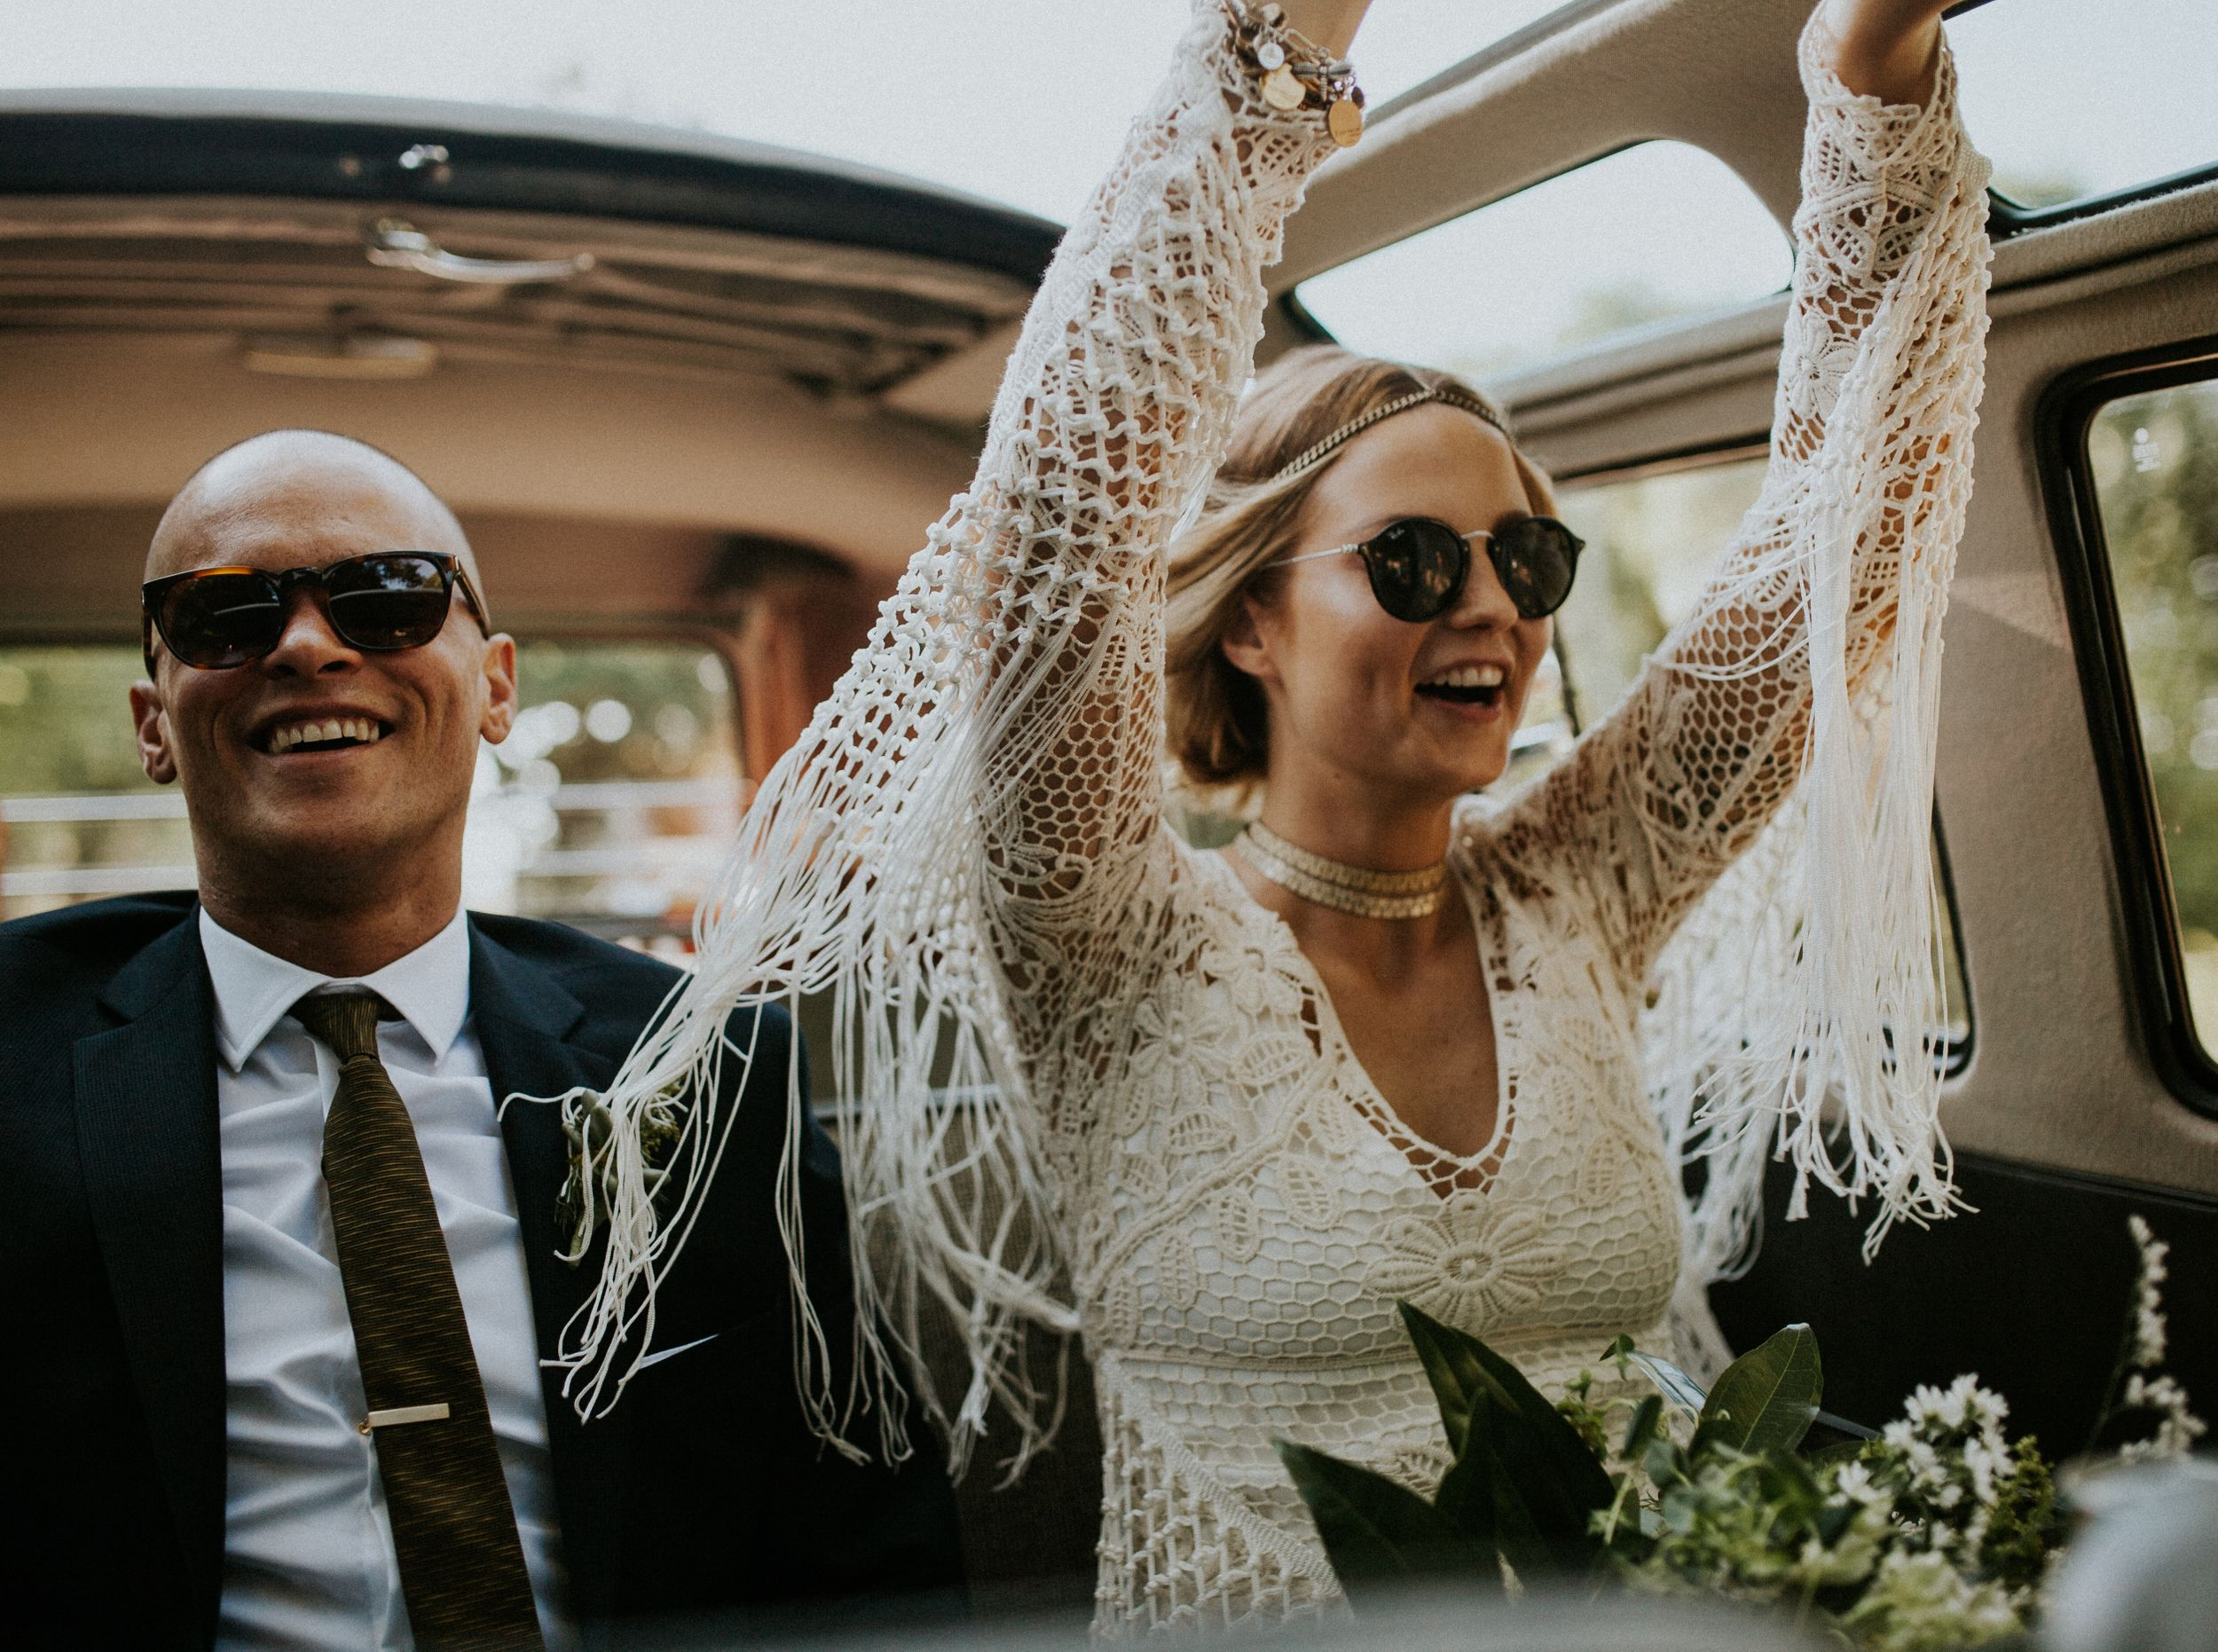 stylish bride and groom in a Volkswagen having fun with big smiles wearing sunglasses with their hands up.